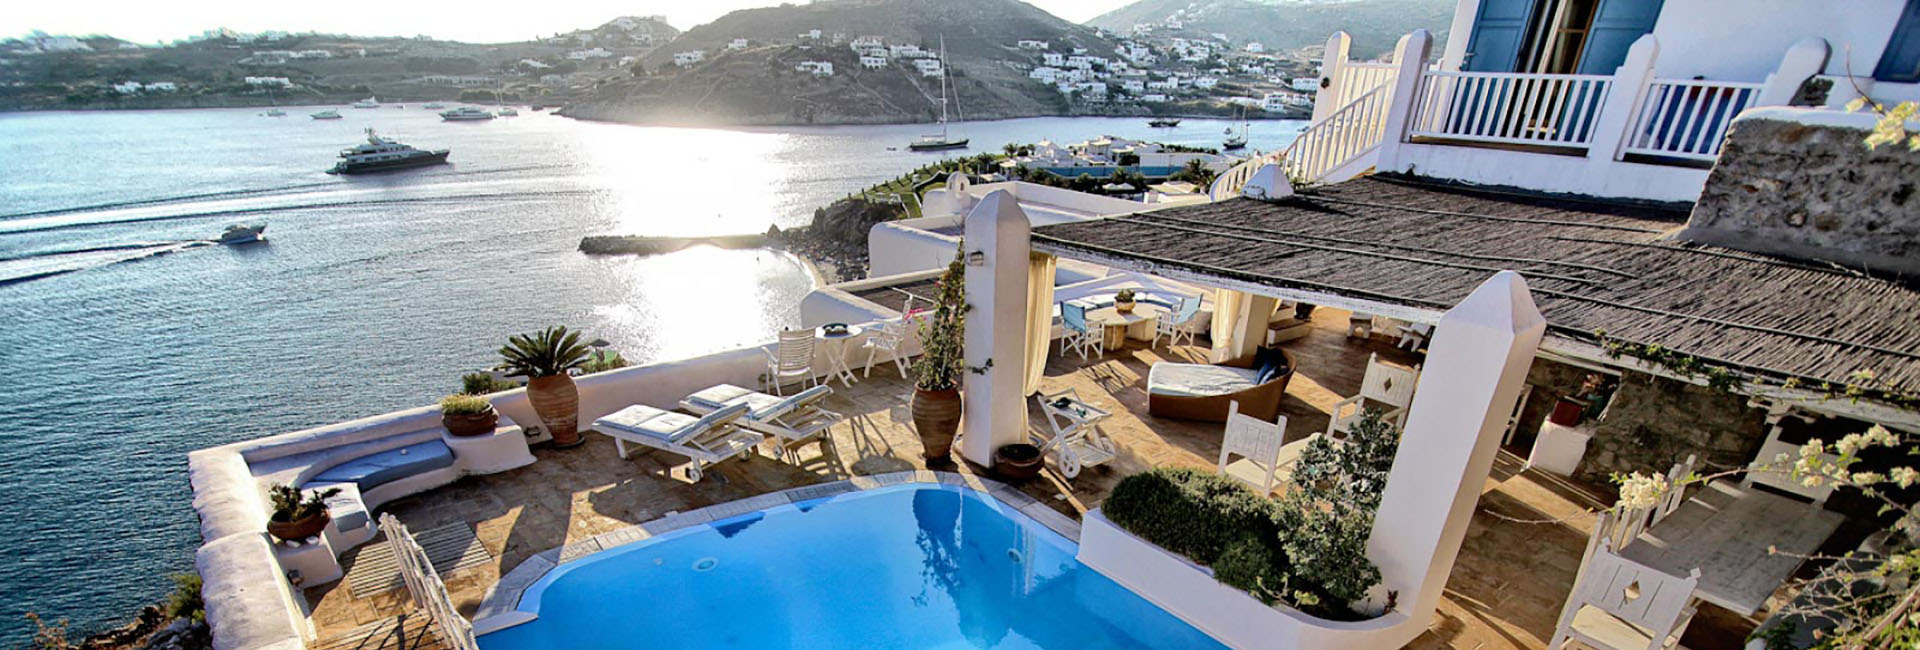 Holidays Villas Luxury Villas For Rent Athens Mykonos Santorini Golden Home